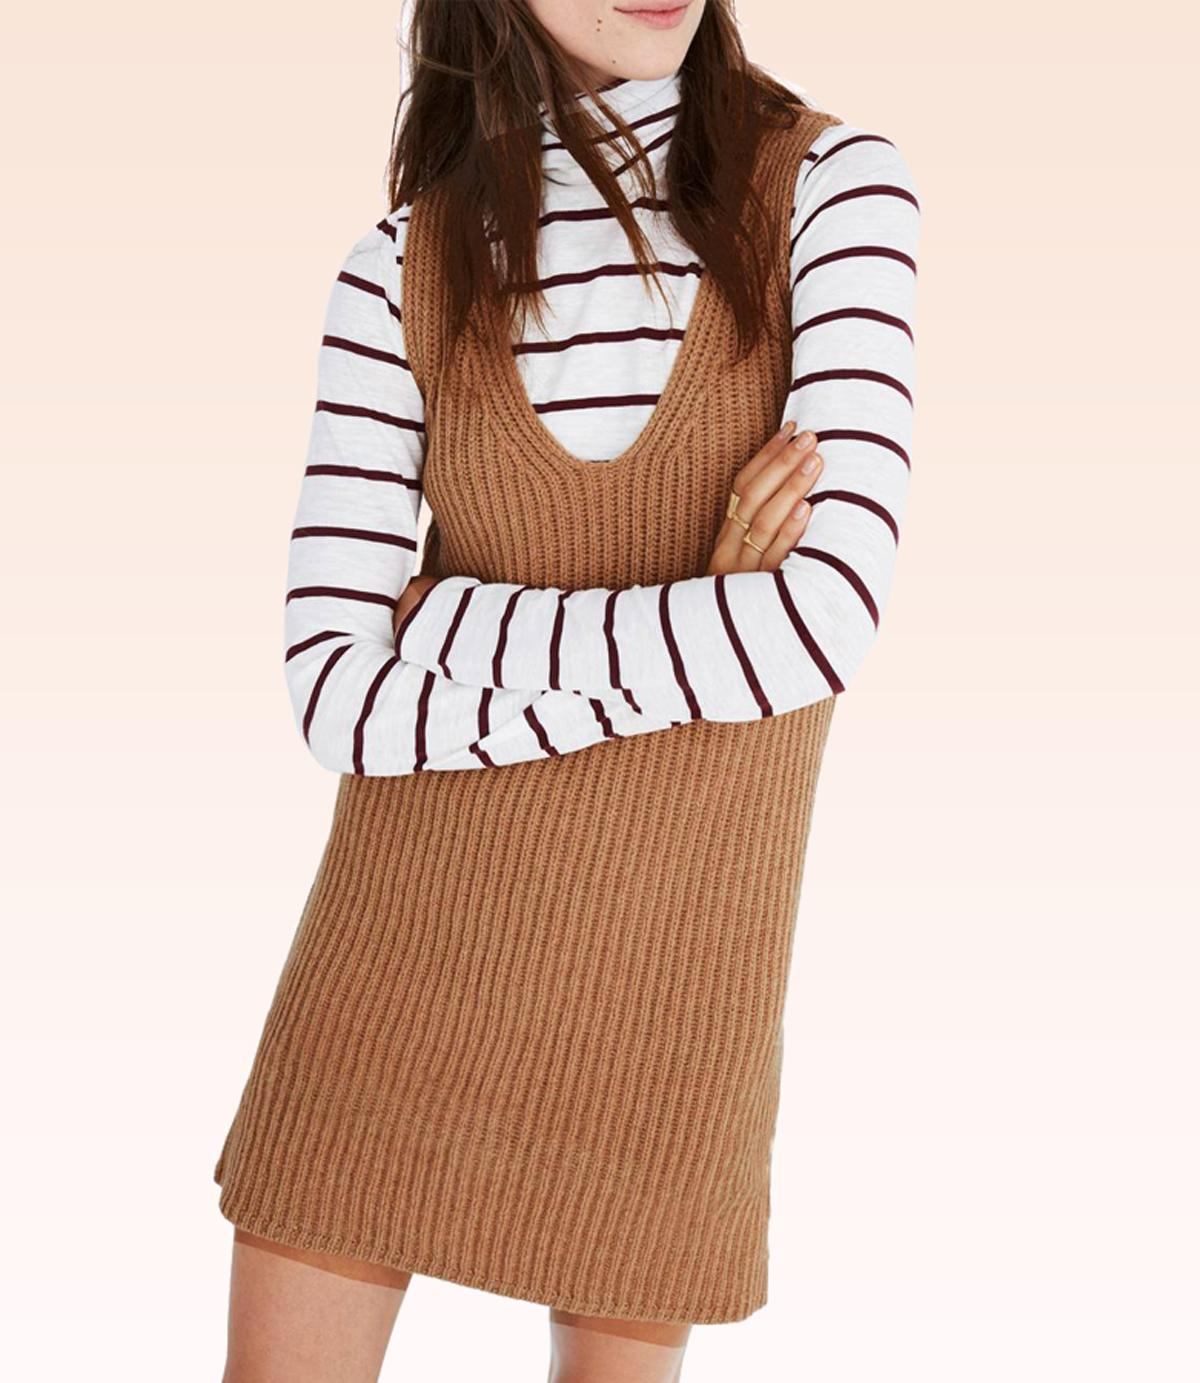 11 Sweater Dresses To Wear With Your Knee-High Boots